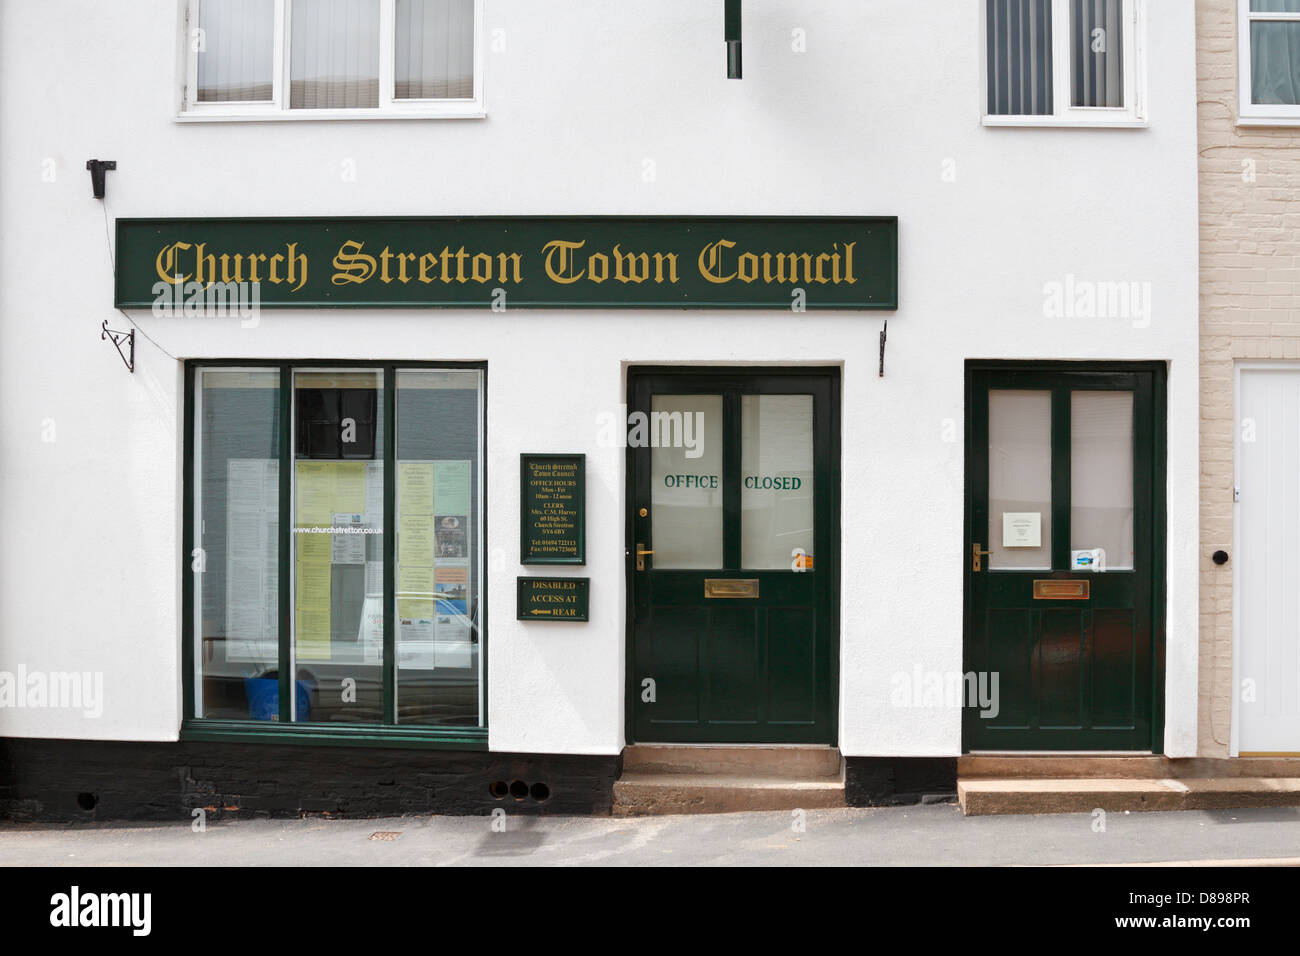 Church Stretton Town Council Offices, Shropshire, England, UK. - Stock Image